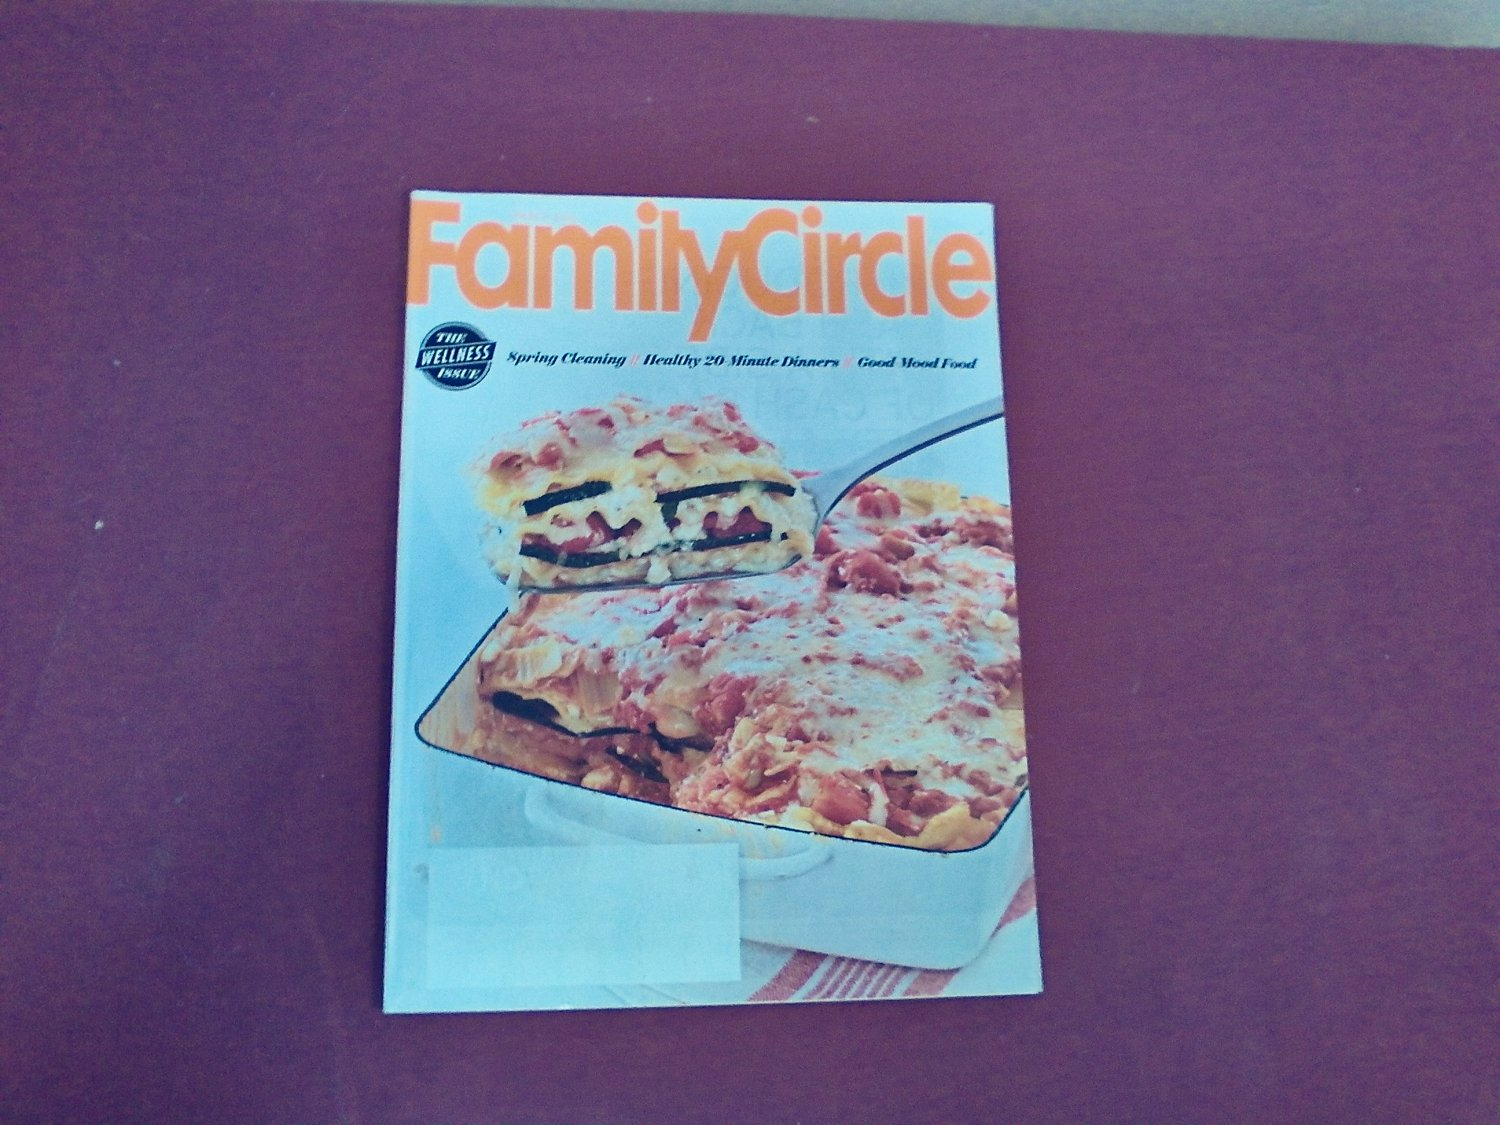 Family Circle Magazine March 2015 Volume 128 Number 3 - The Wellness Issue (G1)